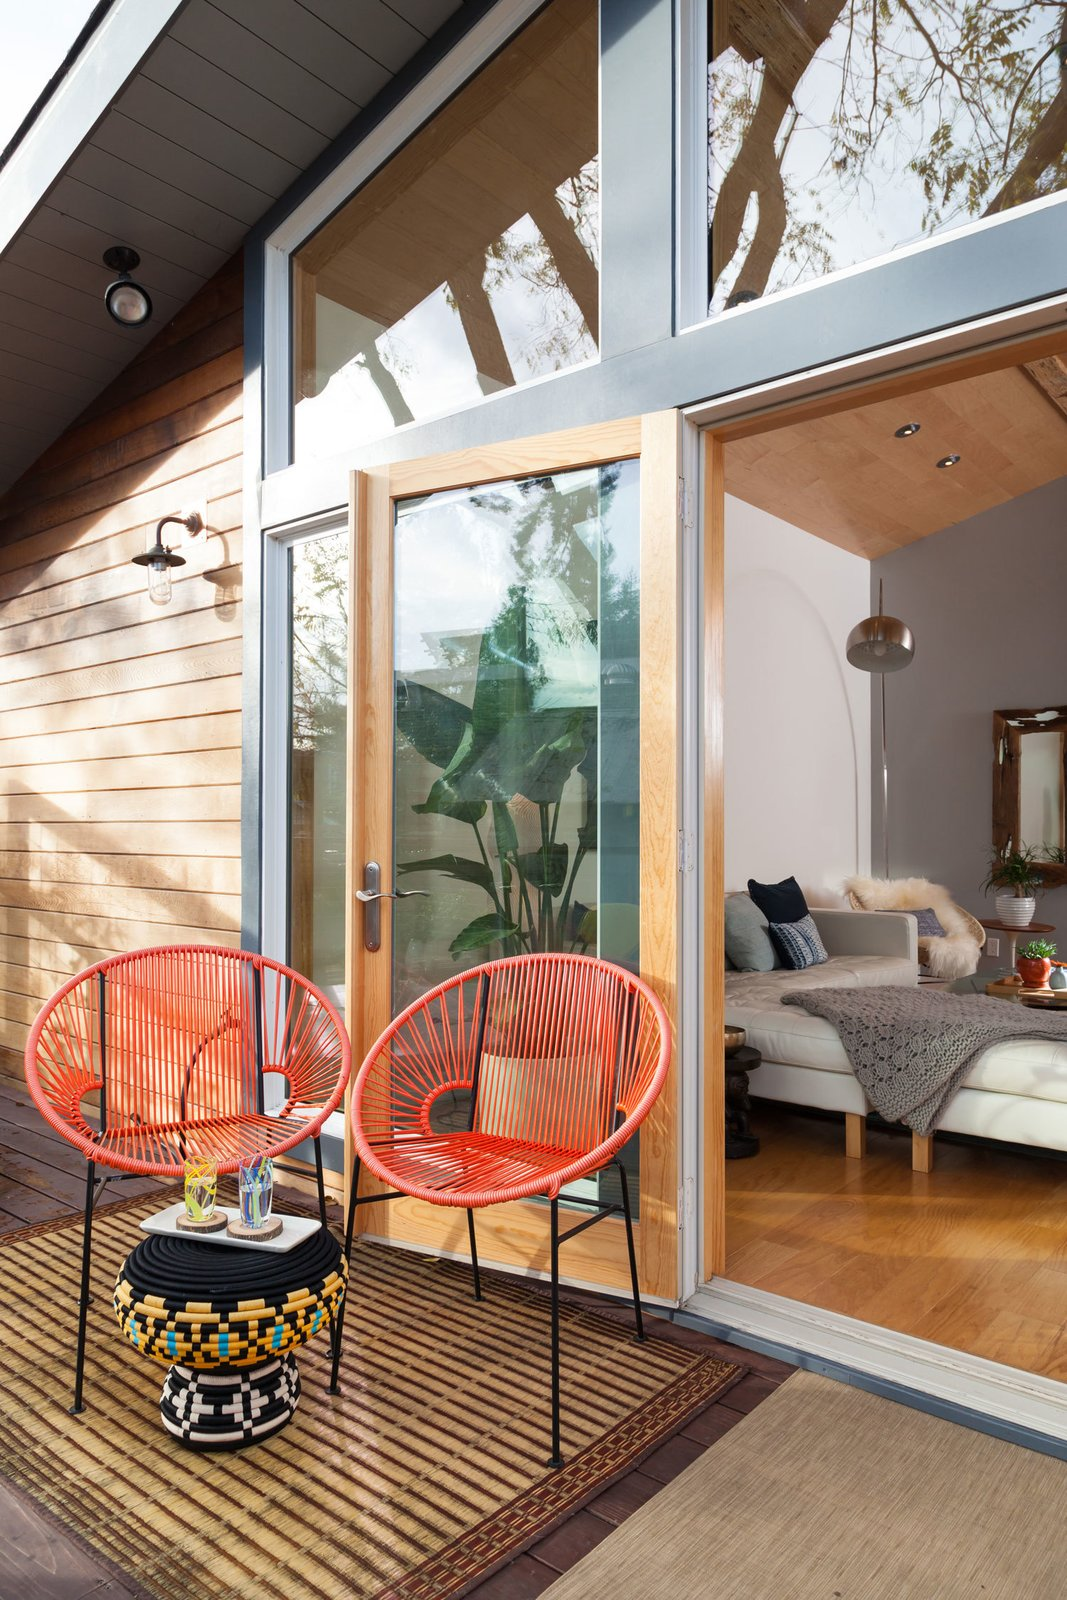 Outdoor, Small Patio, Porch, Deck, Wood Patio, Porch, Deck, and Decking Patio, Porch, Deck The space is designed for easy indoor-outdoor access.  Photo 5 of 5 in Renovation: A Sunny Berkeley Bungalow Invites the Outdoors In from Sunny Berkeley Bungalow Renovation